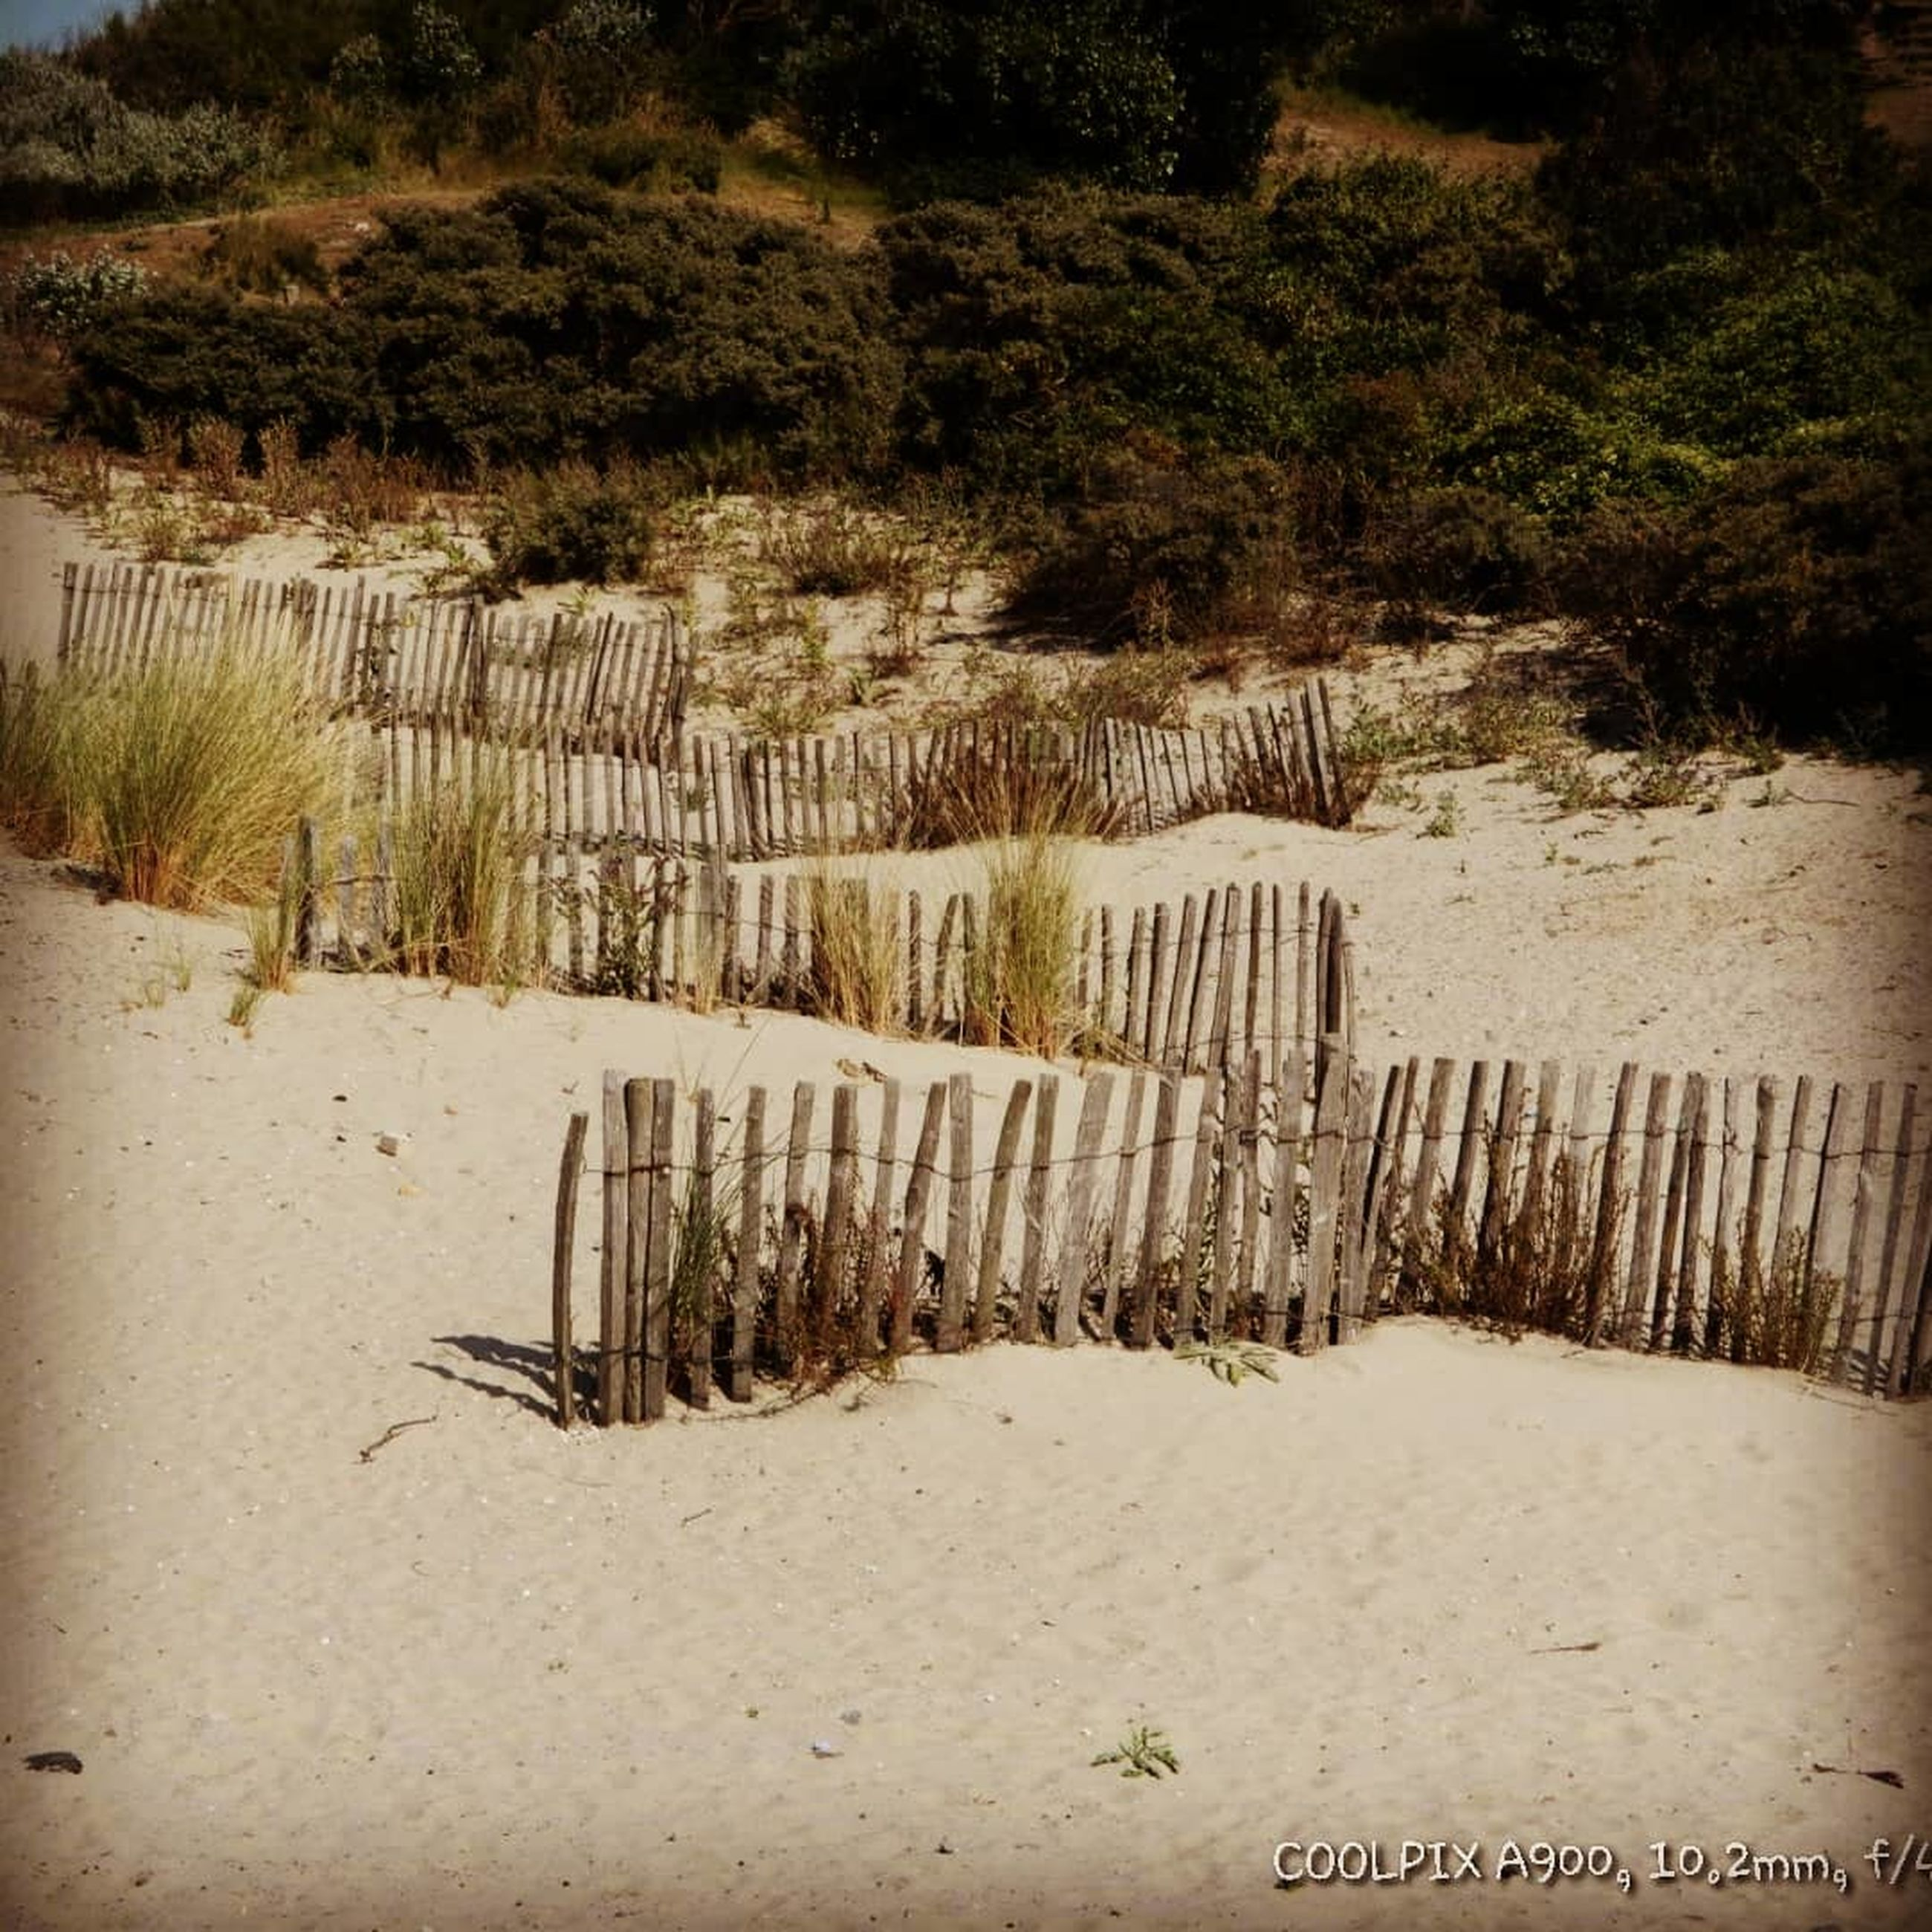 plant, tree, land, nature, tranquil scene, sand, tranquility, no people, boundary, day, fence, barrier, beach, water, beauty in nature, field, security, growth, outdoors, wood - material, wooden post